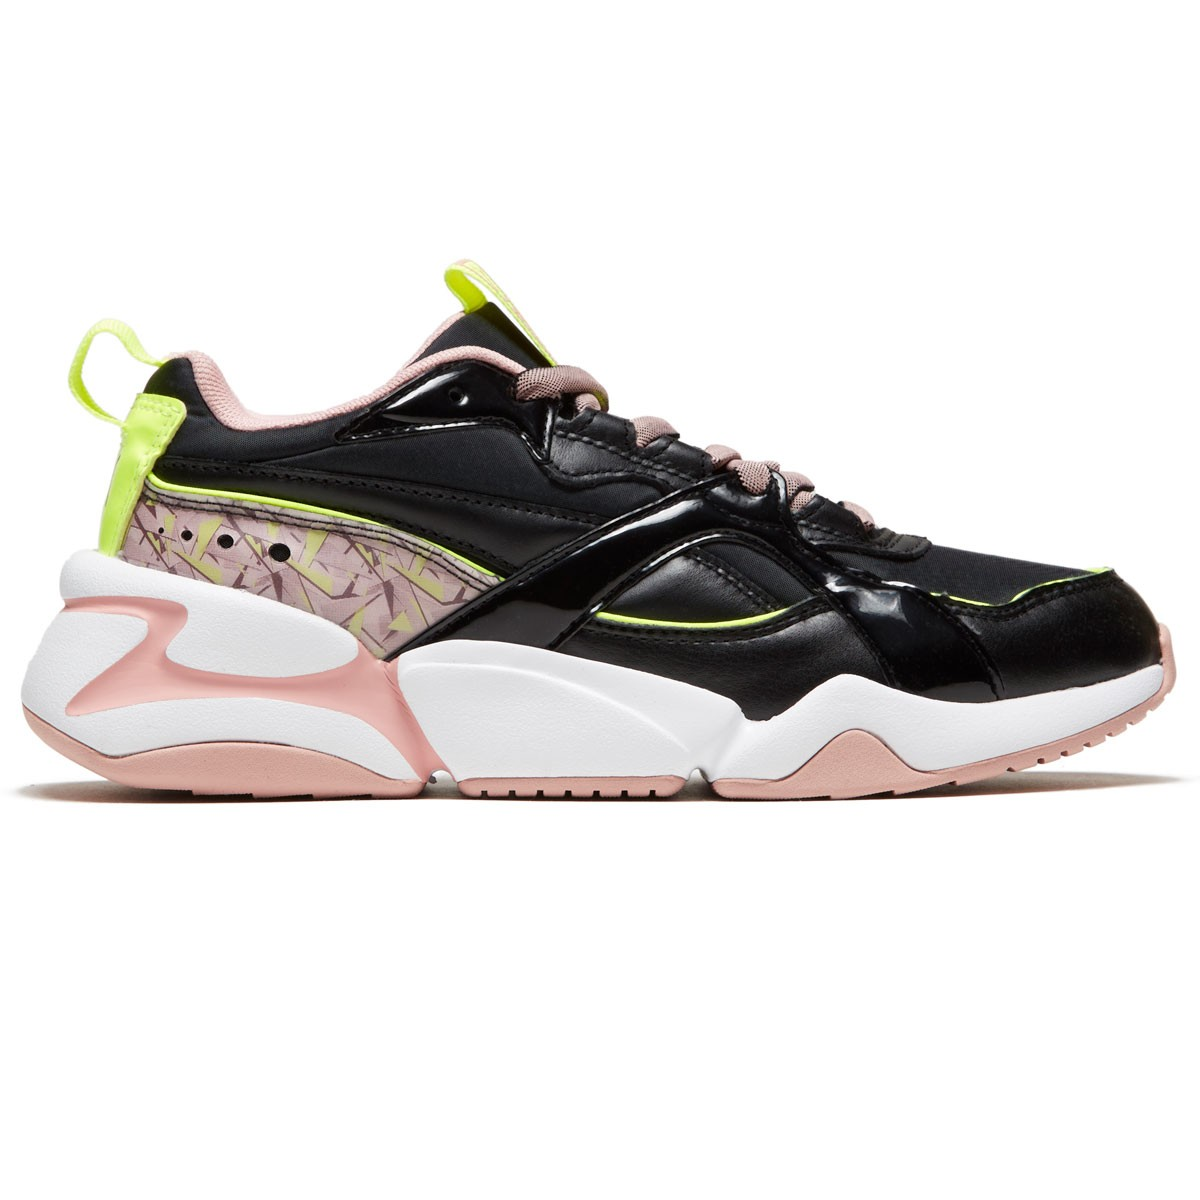 Puma Womens Nova 2 Shift Shoes